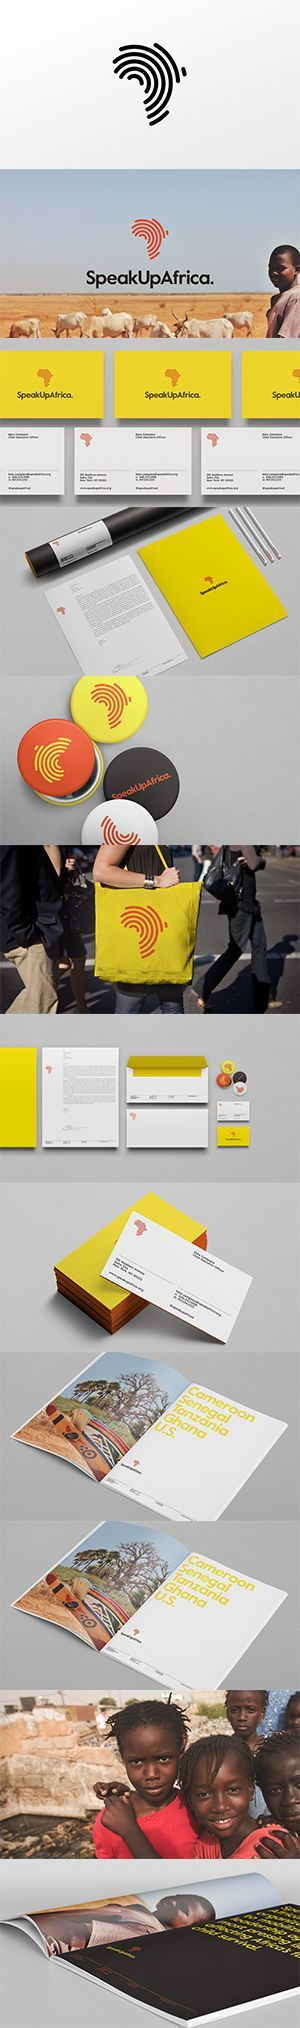 brand identity #spaincreative. If you're a user experience professional, listen to The UX Blog Podcast on iTunes.